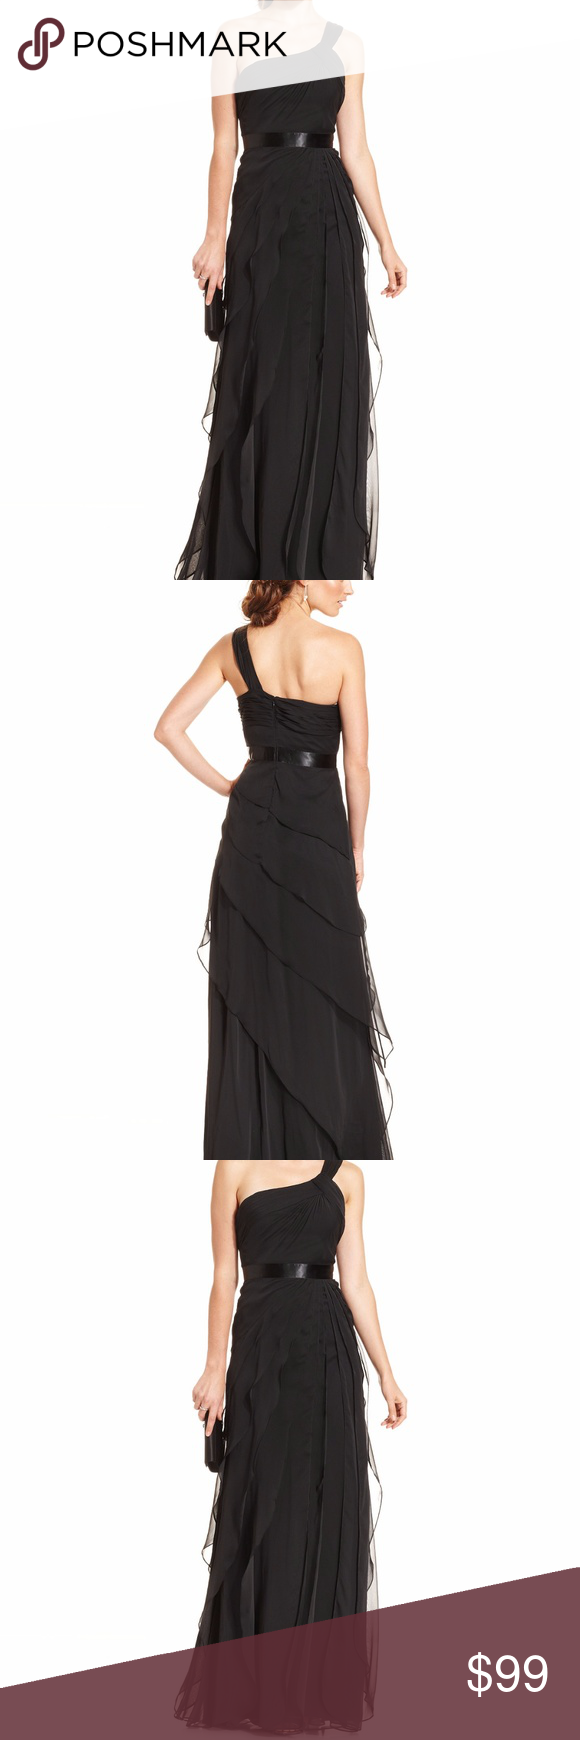 Adrianna Papell One-Shoulder Tiered Chiffon Gown NWT